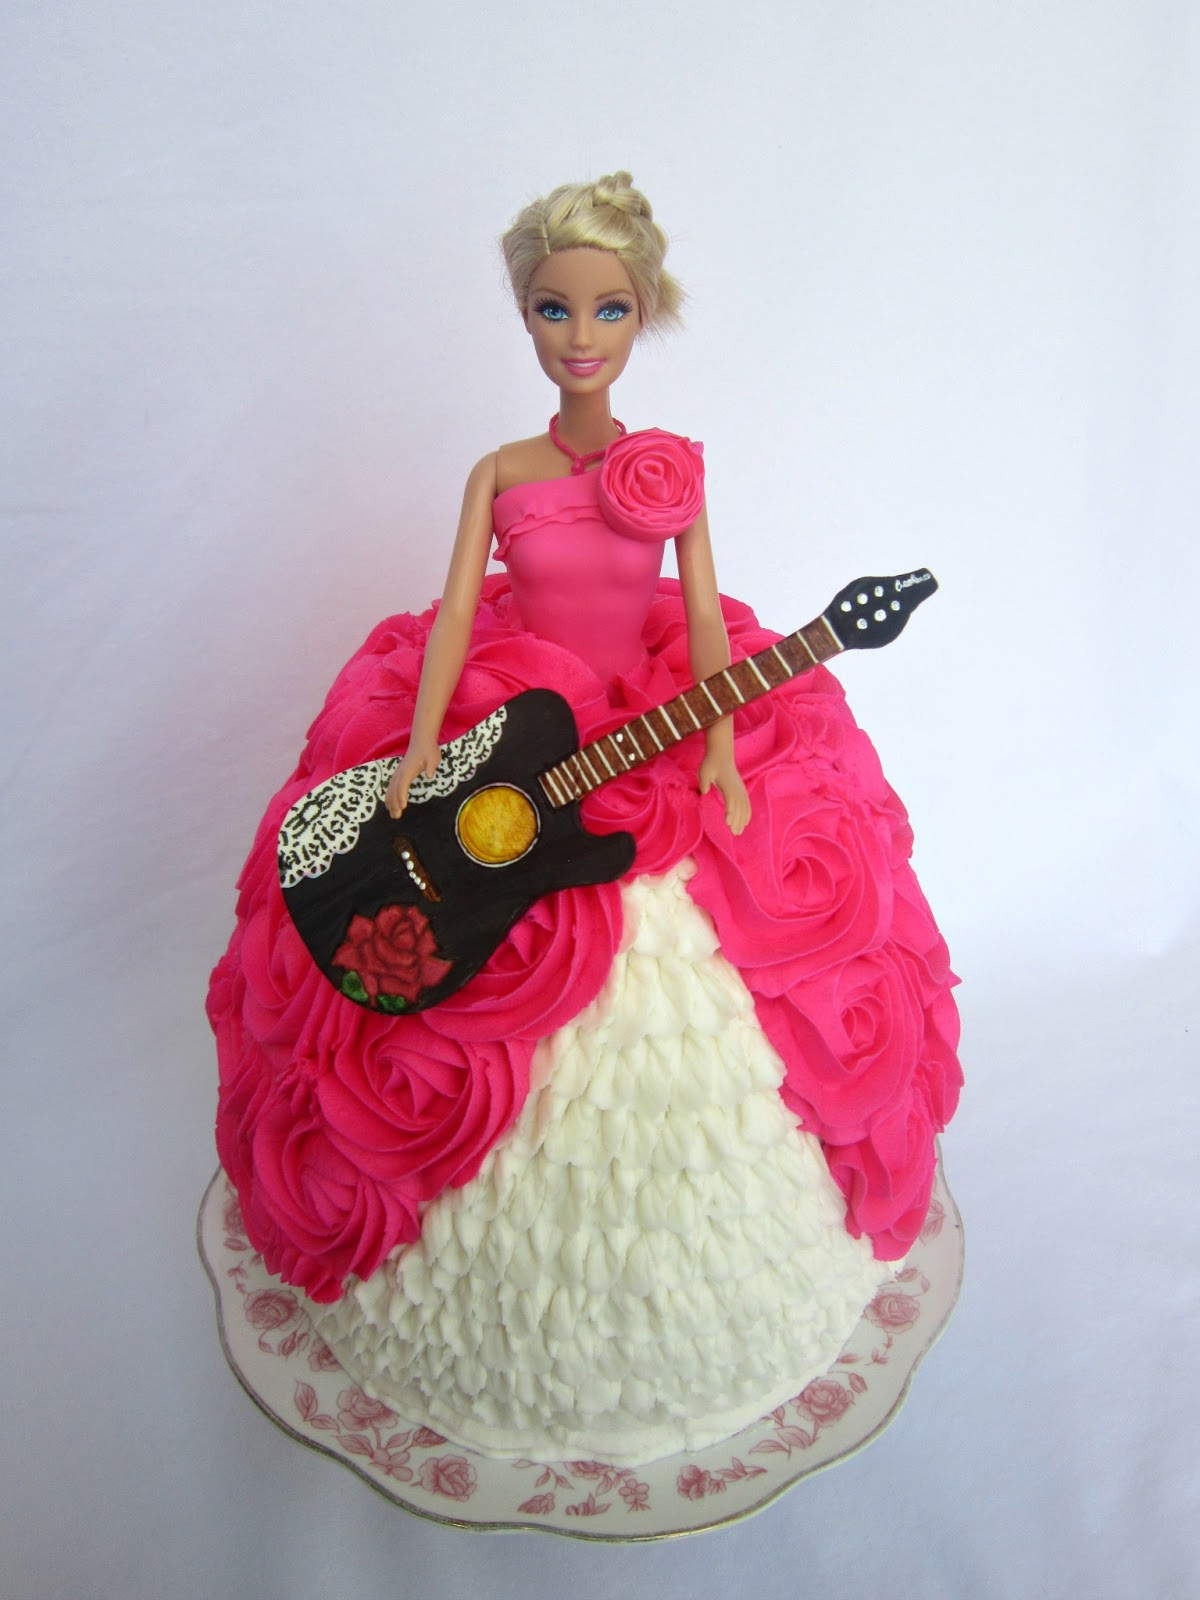 Delectable Cakes Pink Rose Swirl Barbie Birthday Cake